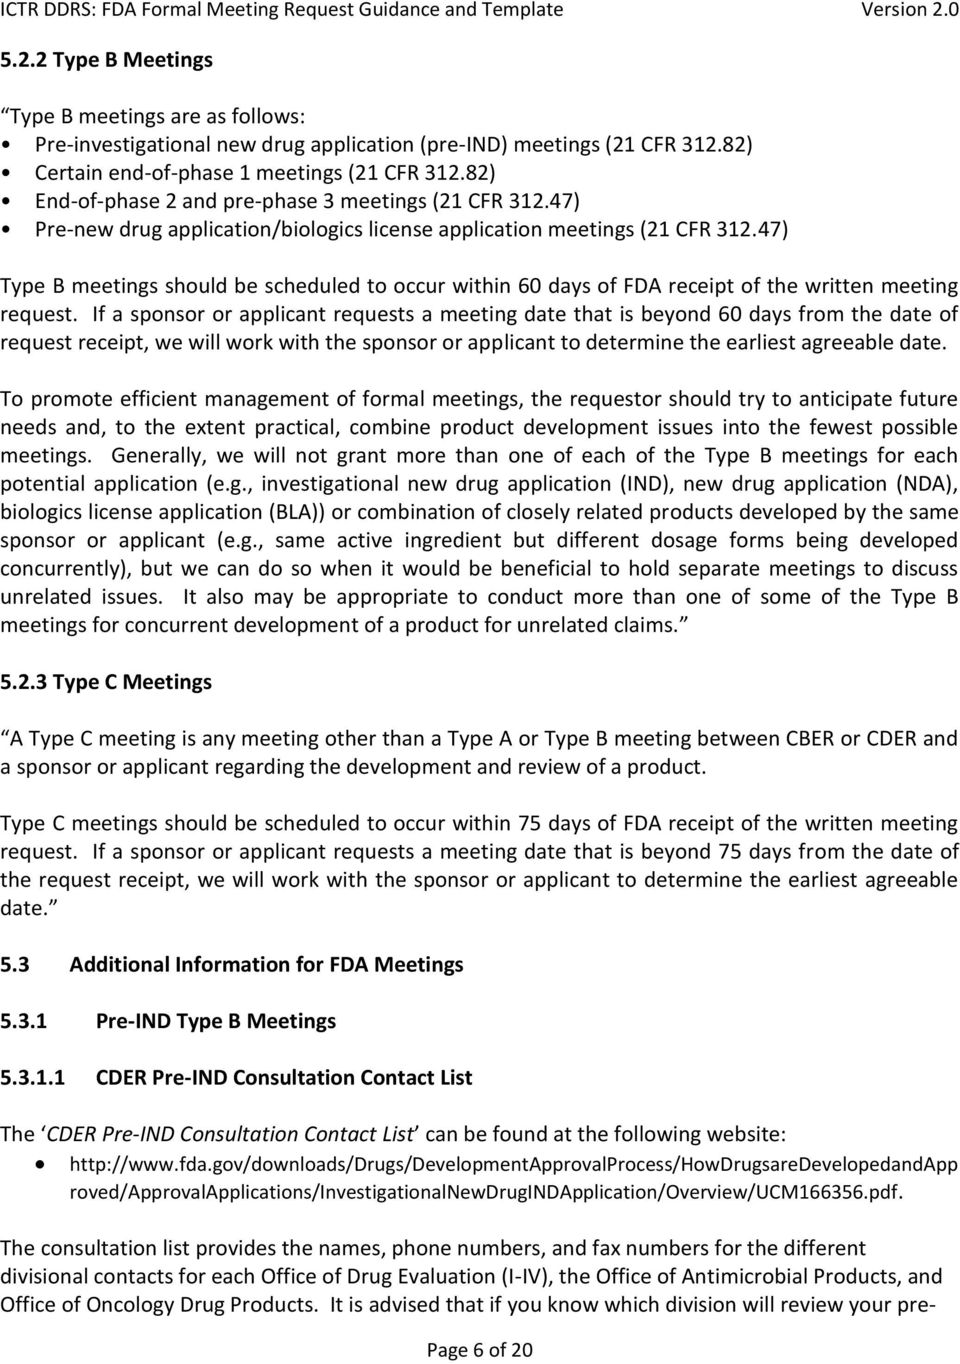 Formal FDA Meeting Request: Guidance and Template - PDF